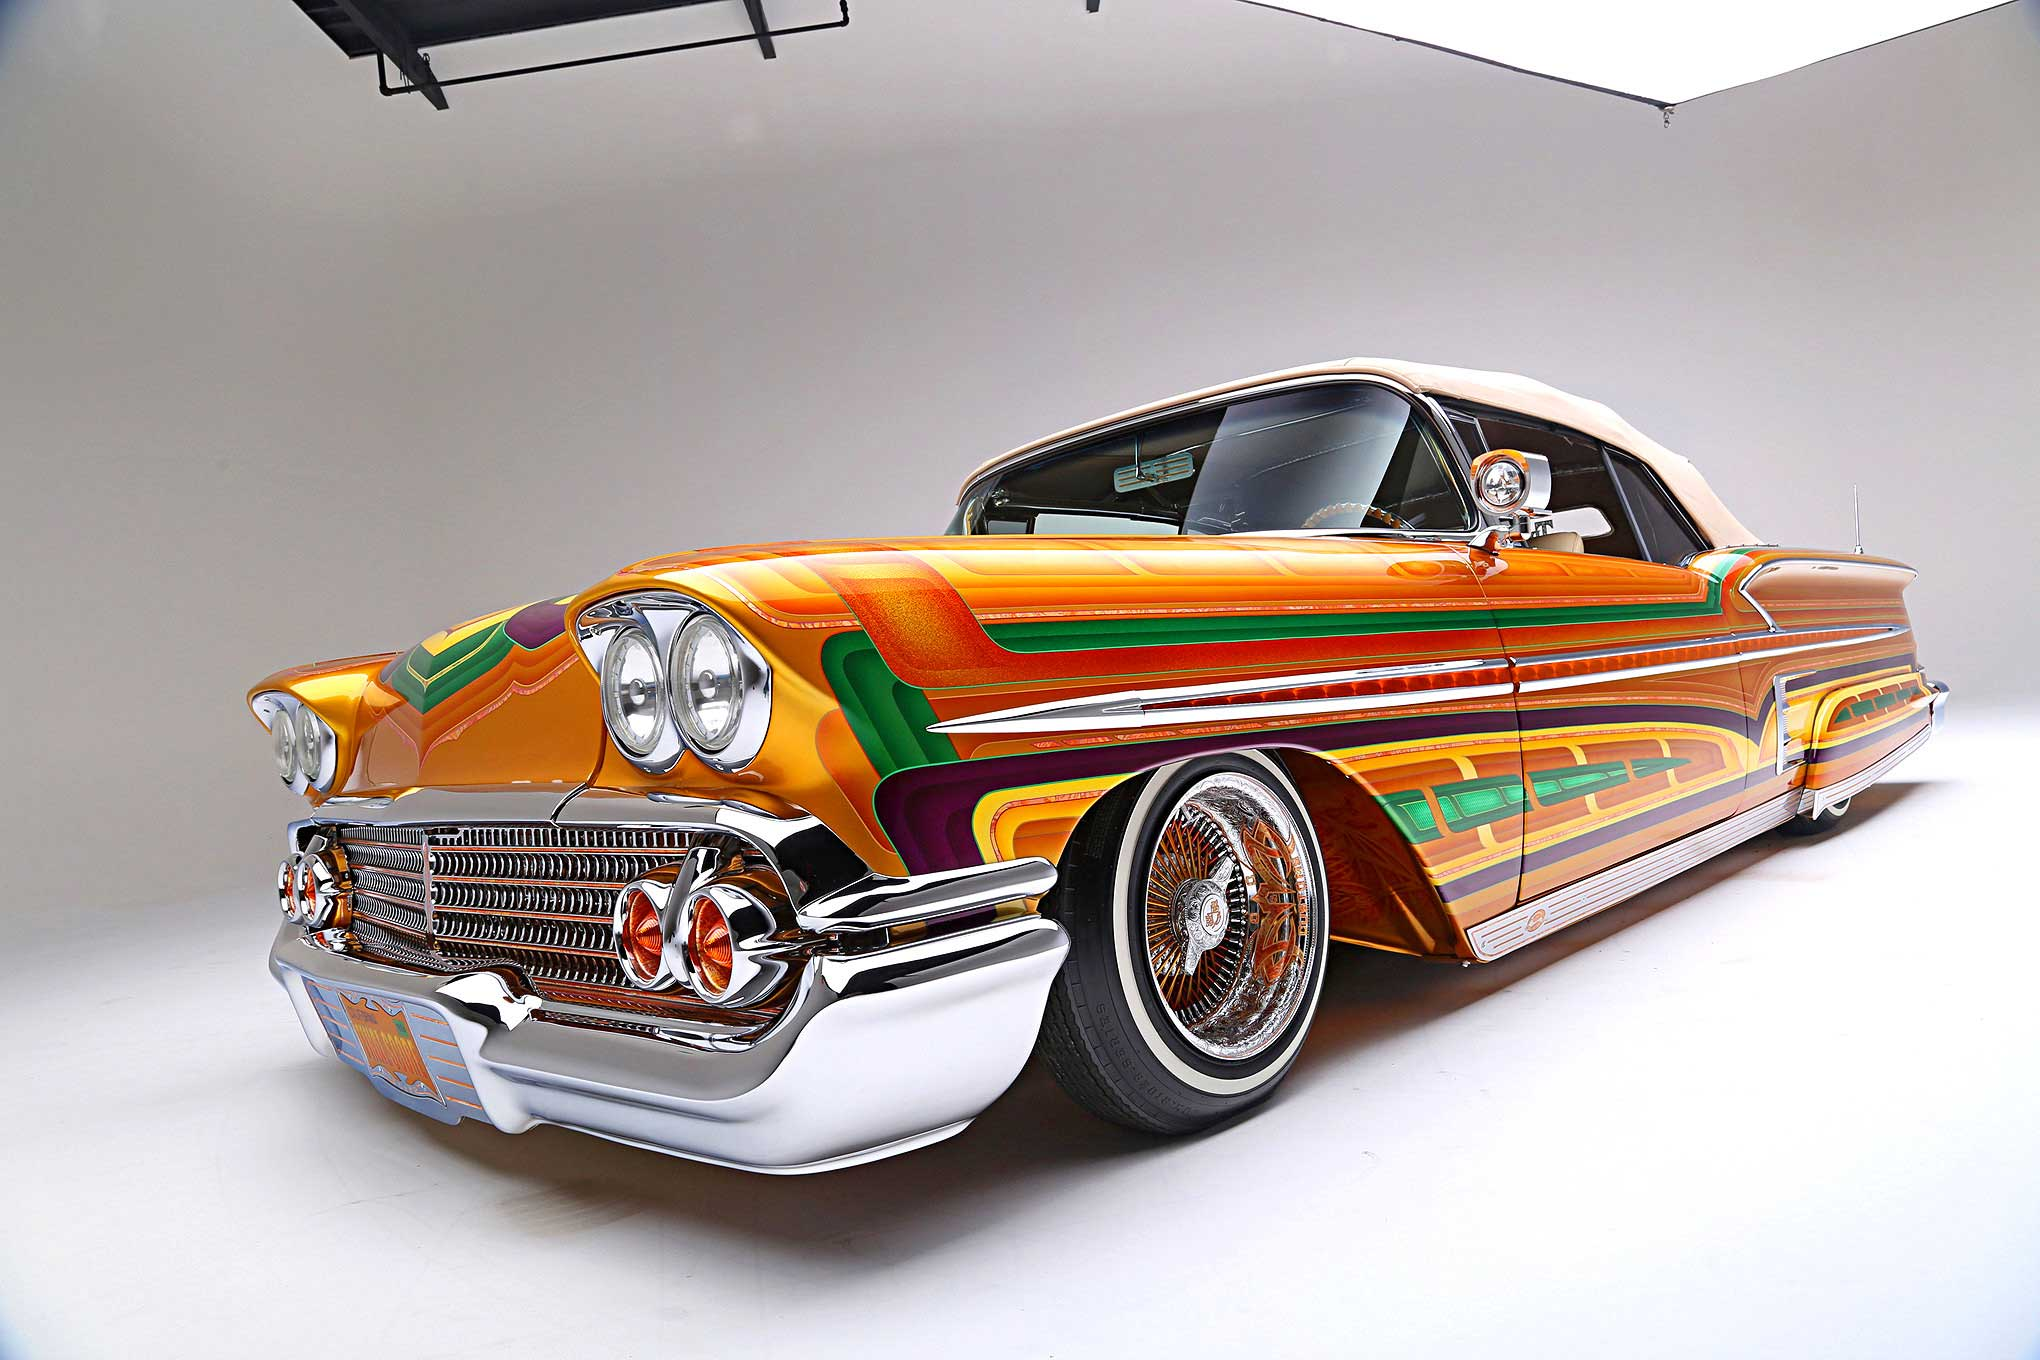 1958 Chevy Impala - 2018 Lowrider of the Year